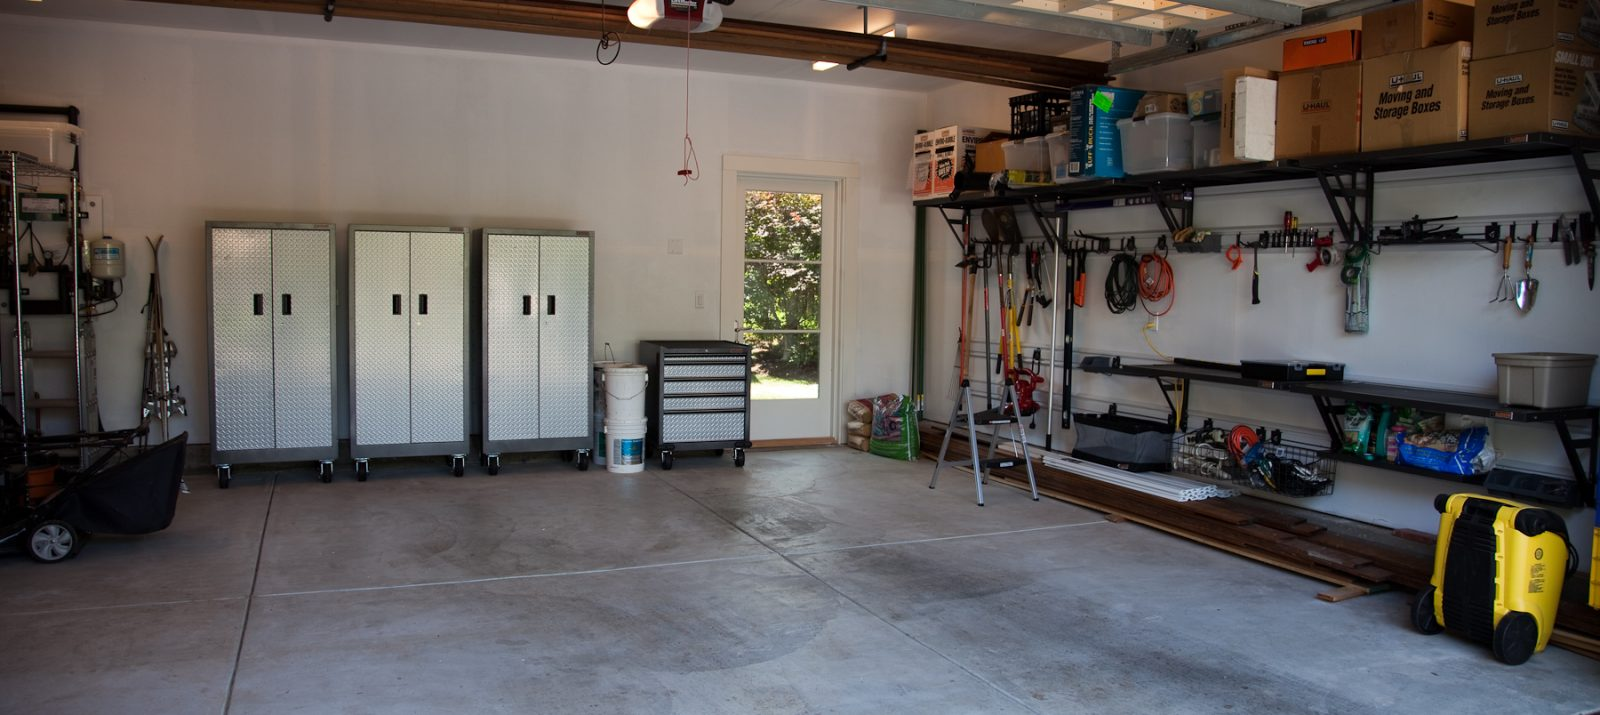 clean and organized garage - Organize Garage